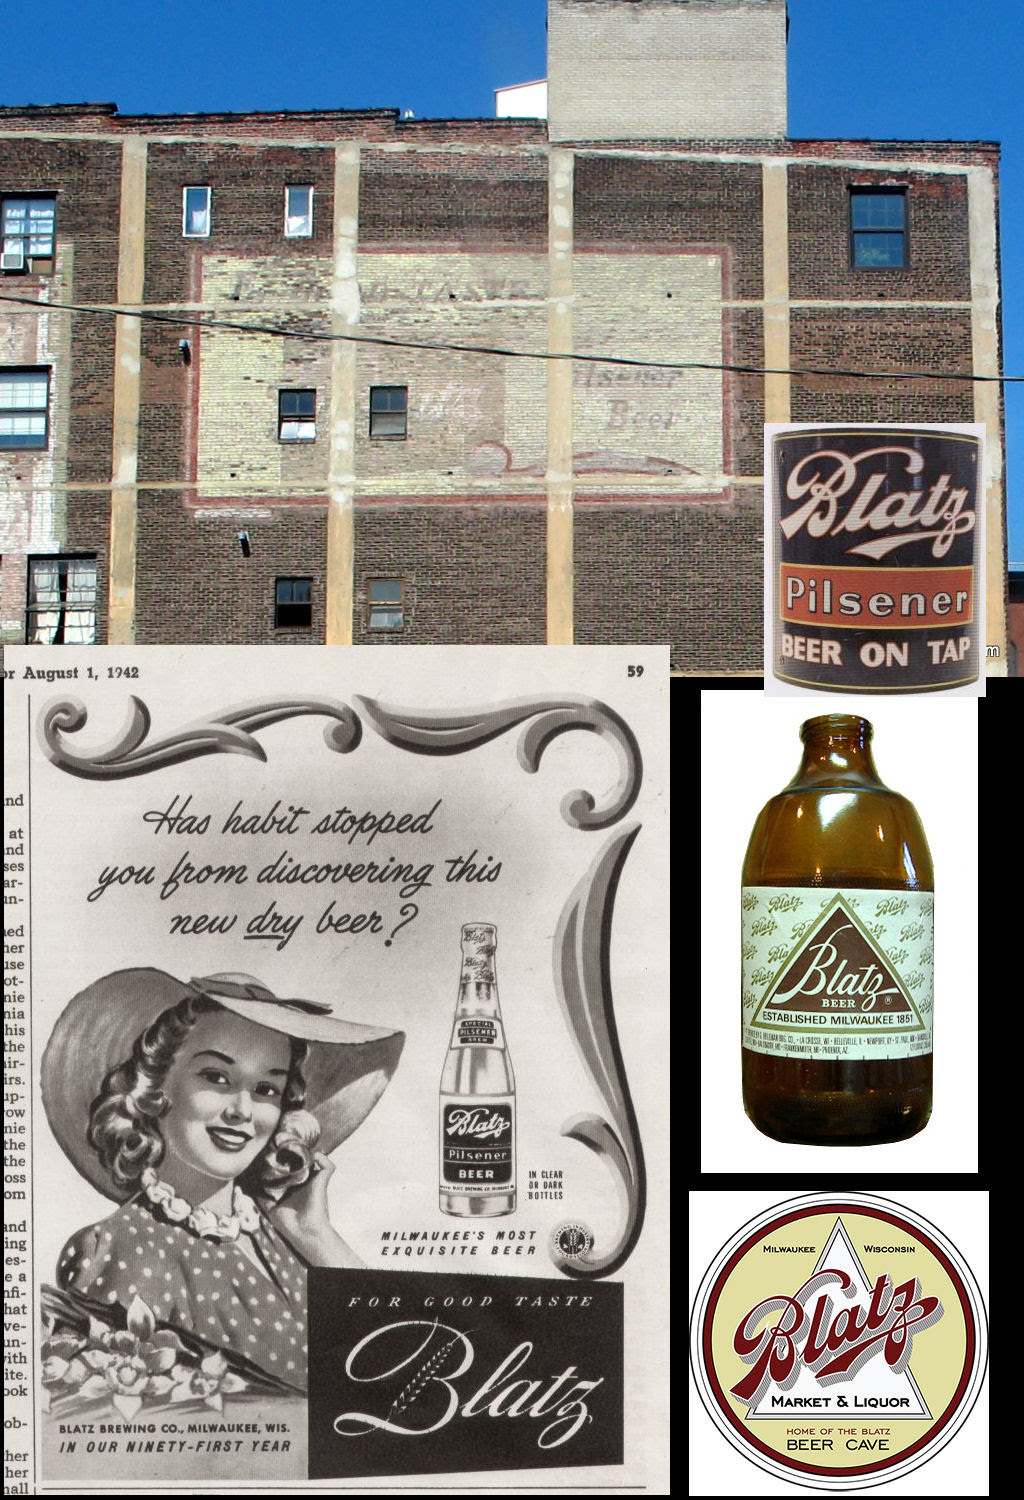 The beer brand on the sun faded advertisement was Milwaukee brewed, Blatz Beer. After doing some digging using Google, I found a key advertisement from a 1942 magazine article about Blatz Beer.